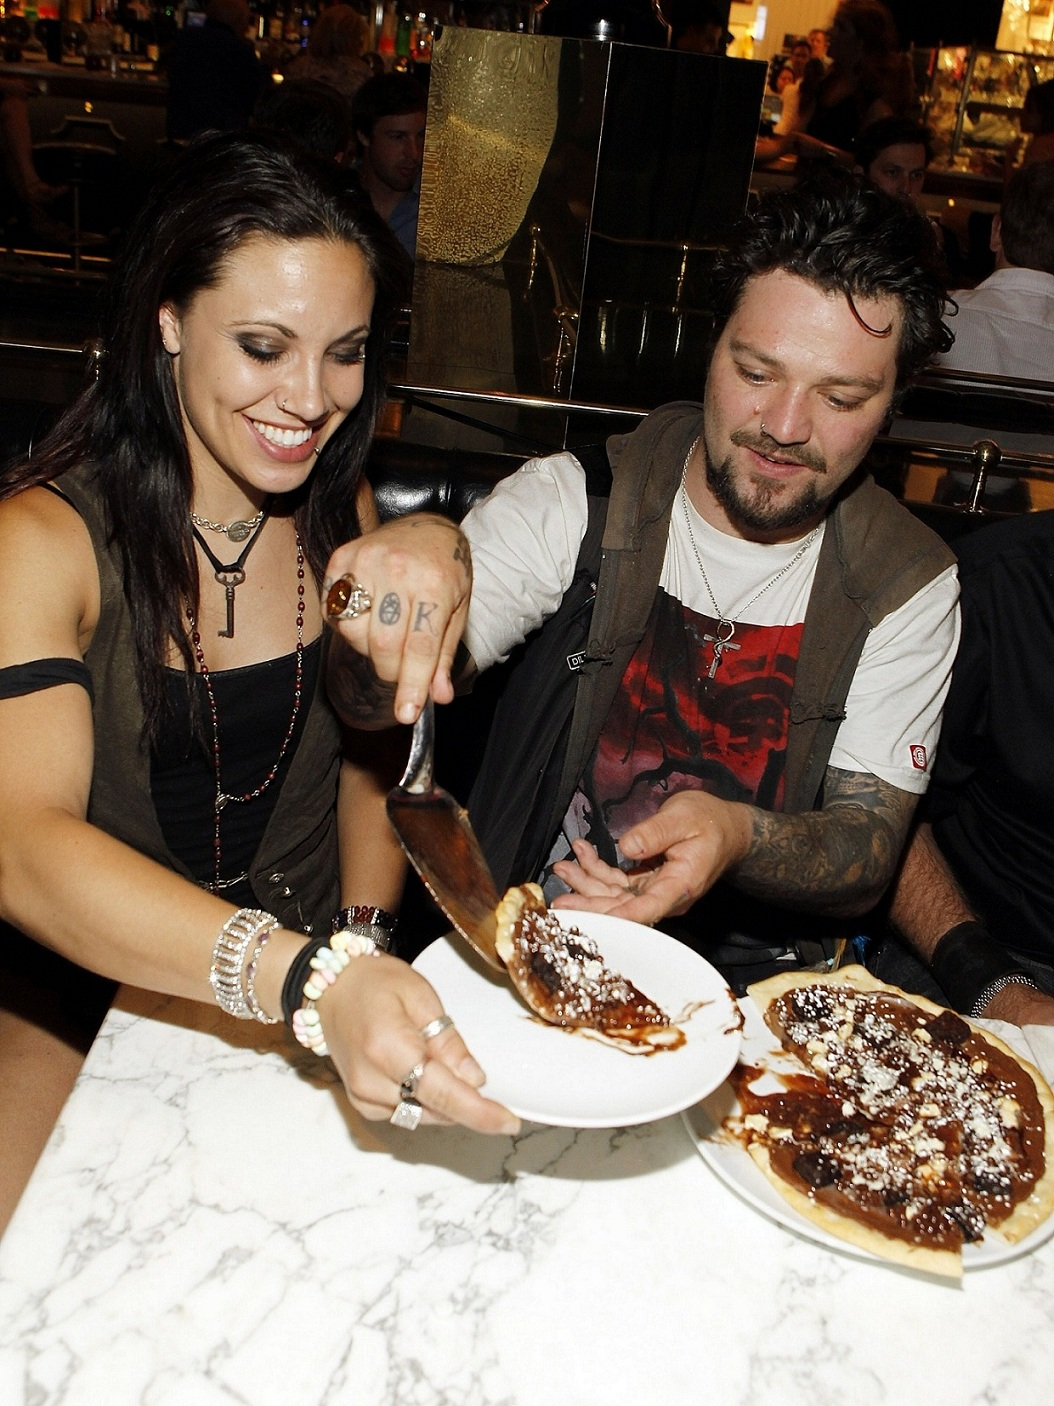 Photo of Bam Margera & his friend  Nikki B